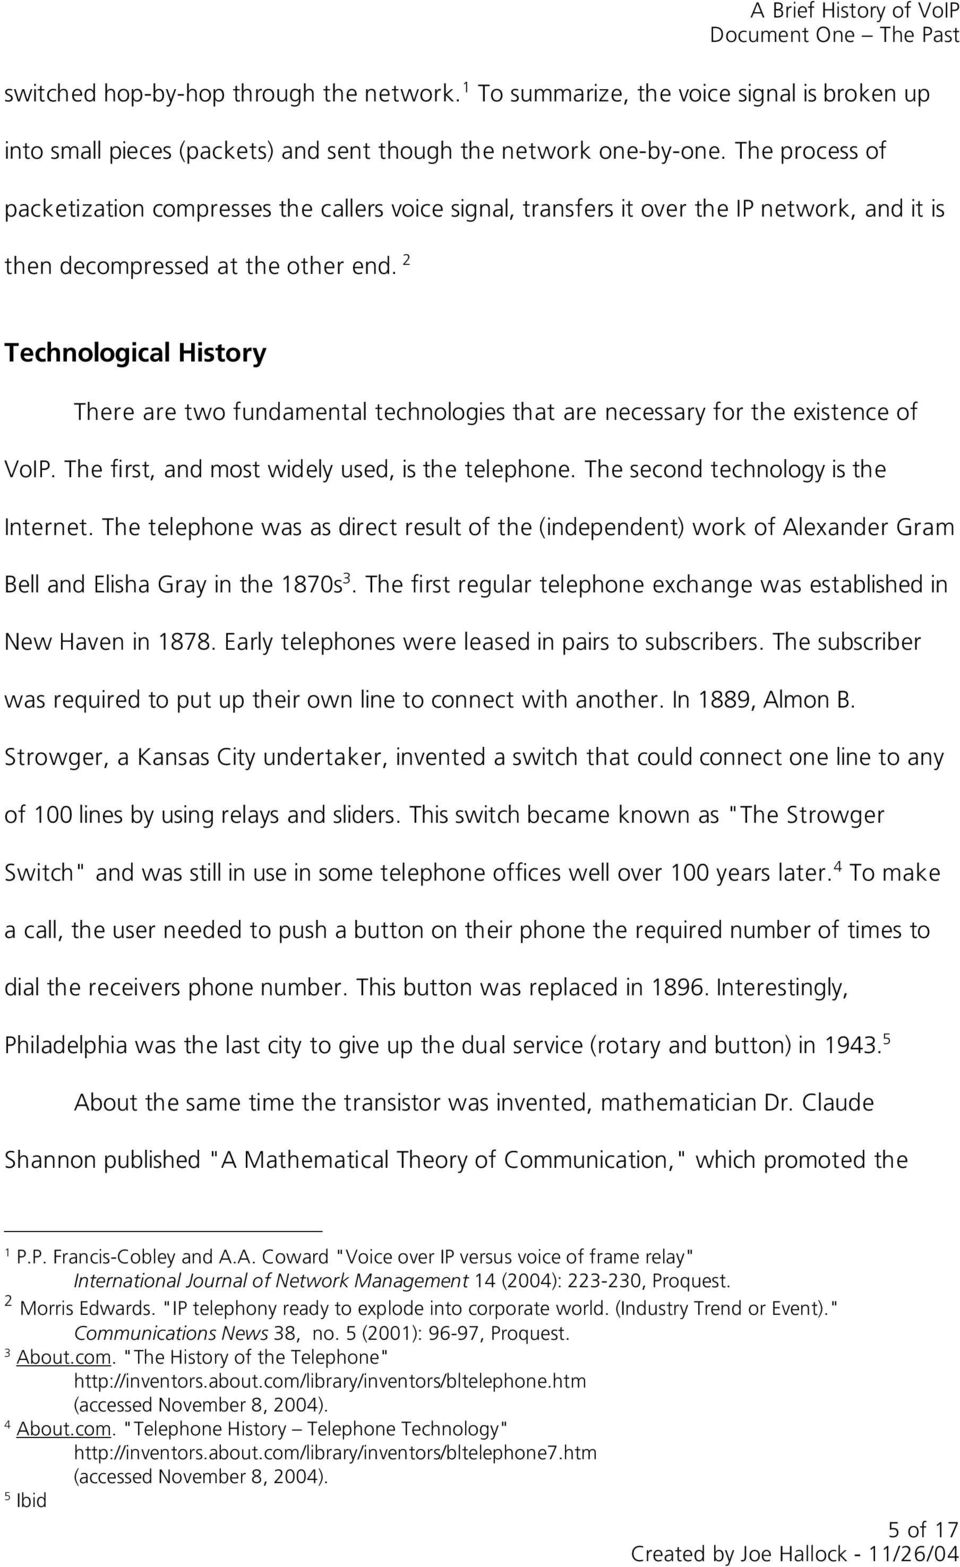 Technological History There are two fundamental technologies that are necessary for the existence of VoIP. The first, and most widely used, is the telephone. The second technology is the Internet.